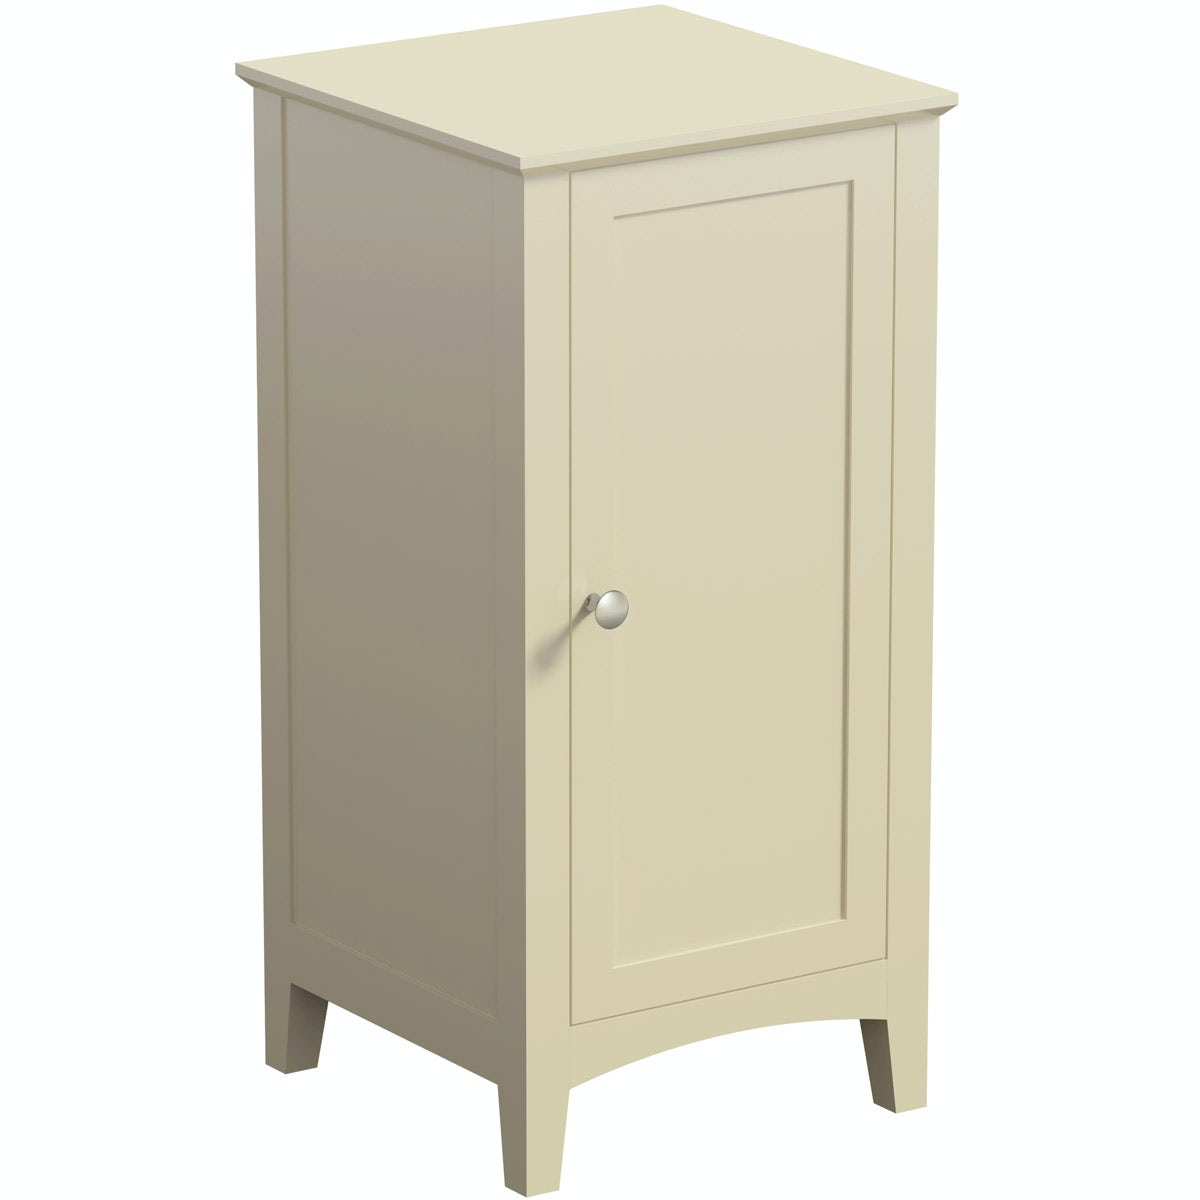 The Bath Co. Camberley satin ivory storage unit